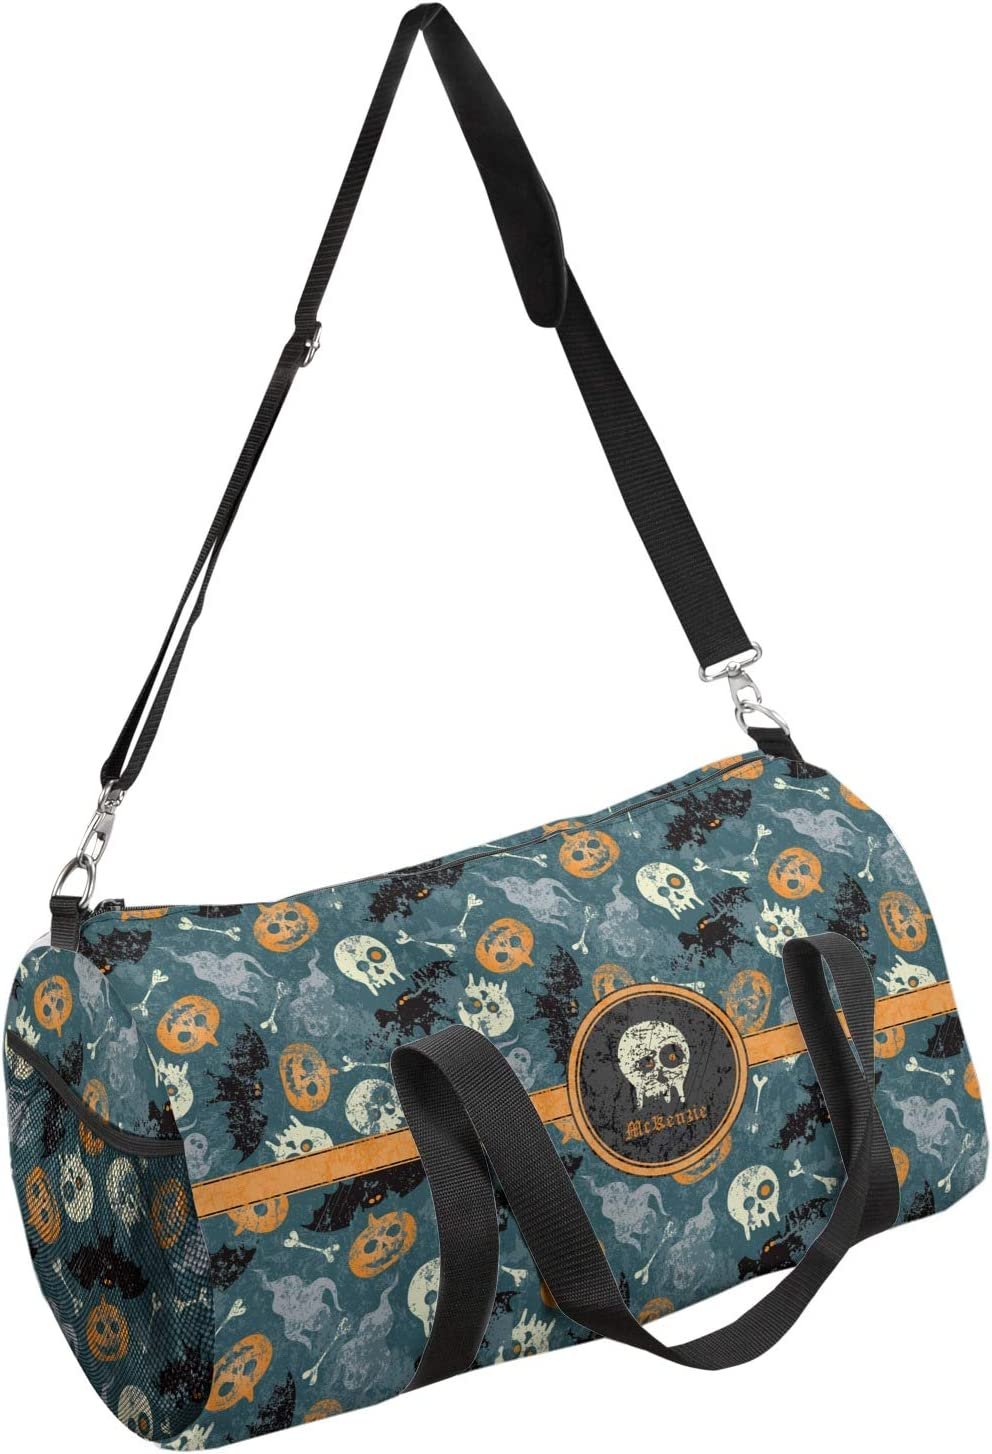 YouCustomizeIt Vintage//Grunge Halloween Duffel Bag Personalized